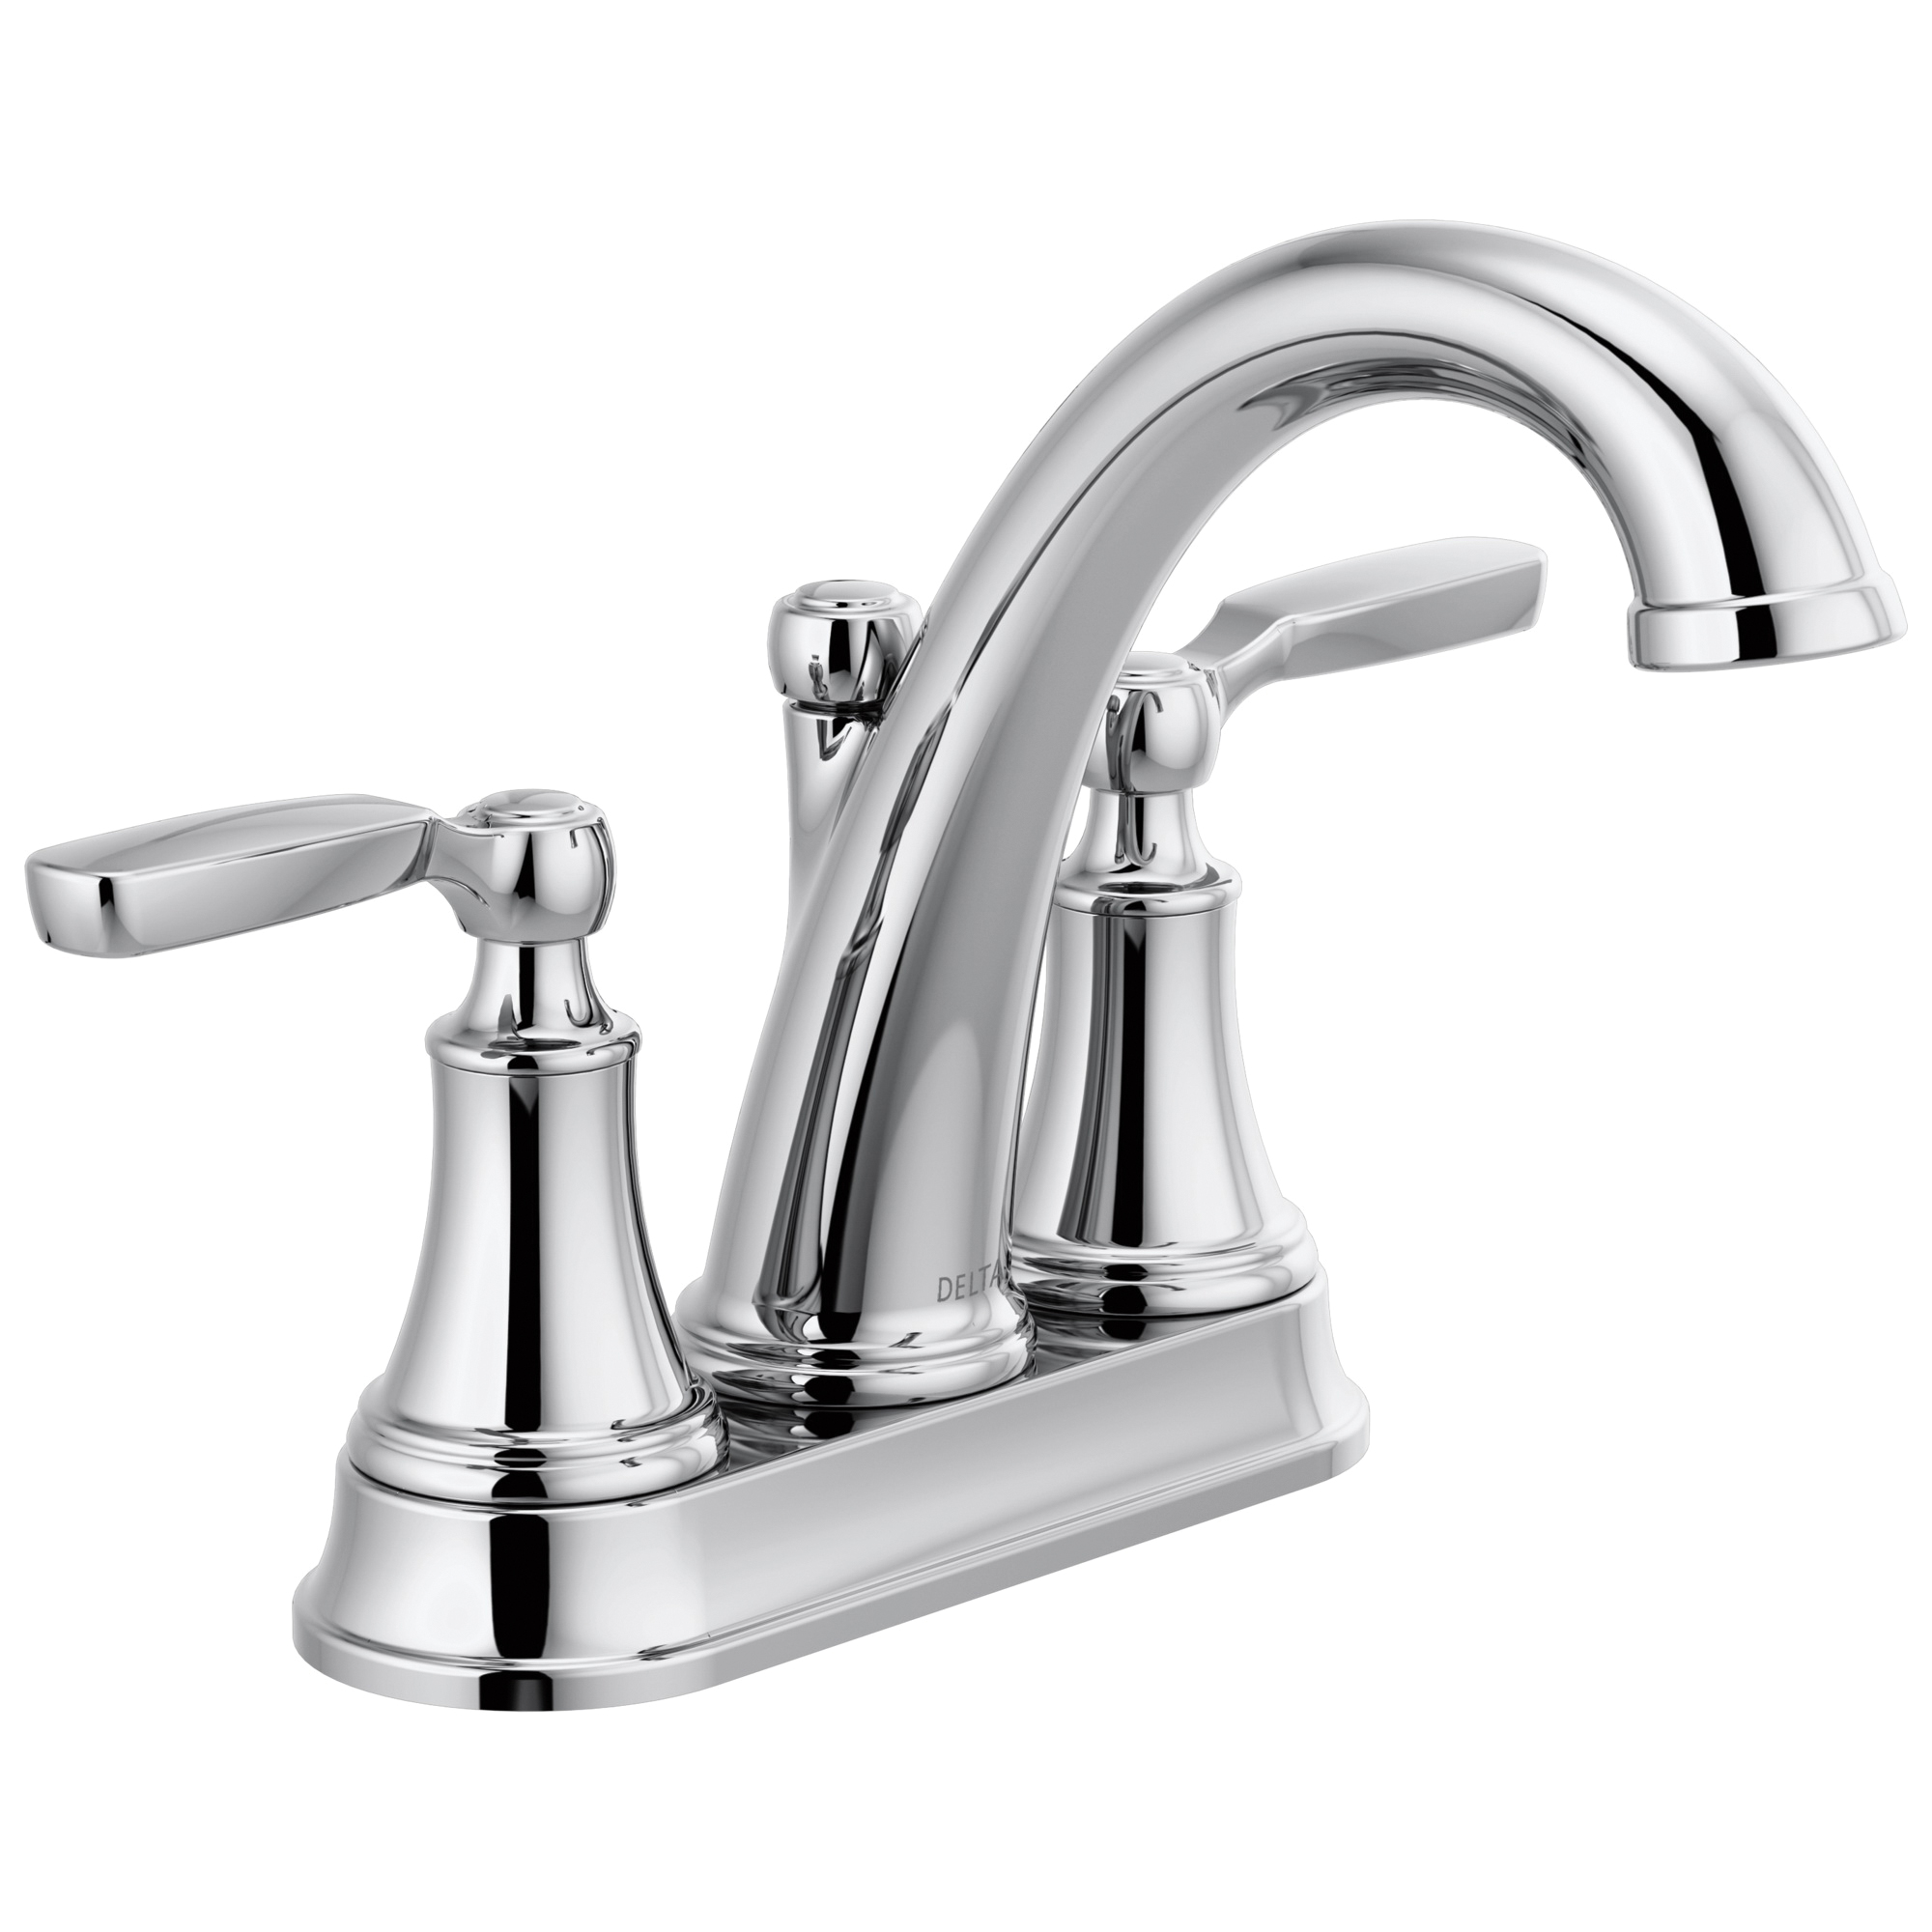 DELTA® 2532LF-MPU Bathroom Faucet, Woodhurst™, Chrome Plated, 2 Handles, Metal Pop-Up Drain, 1.2 gpm